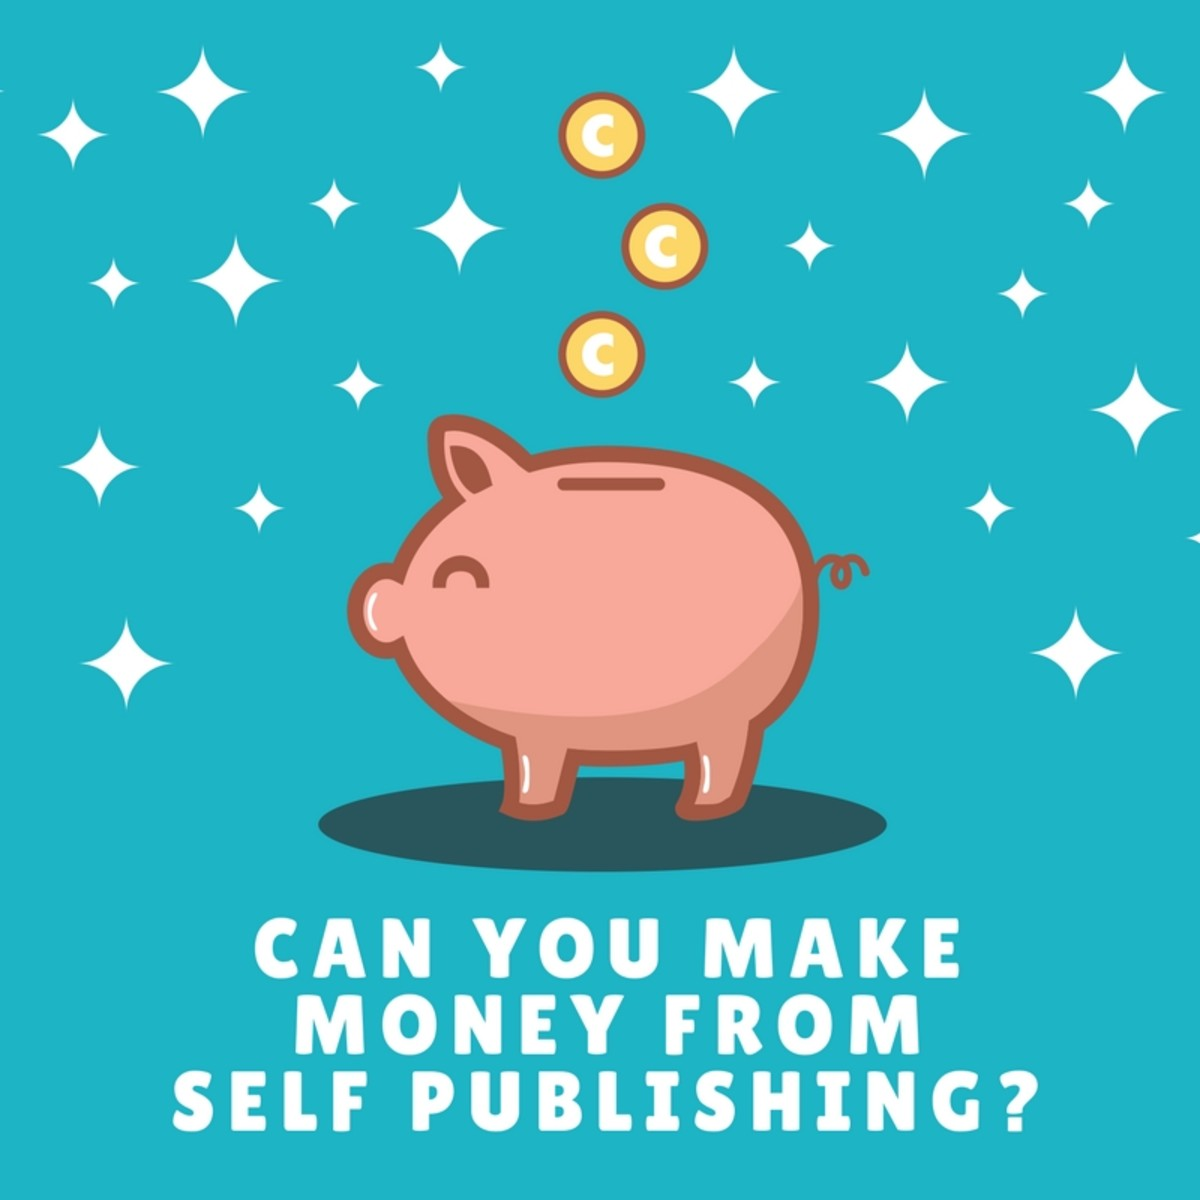 Can You Make Money From Self Publishing?